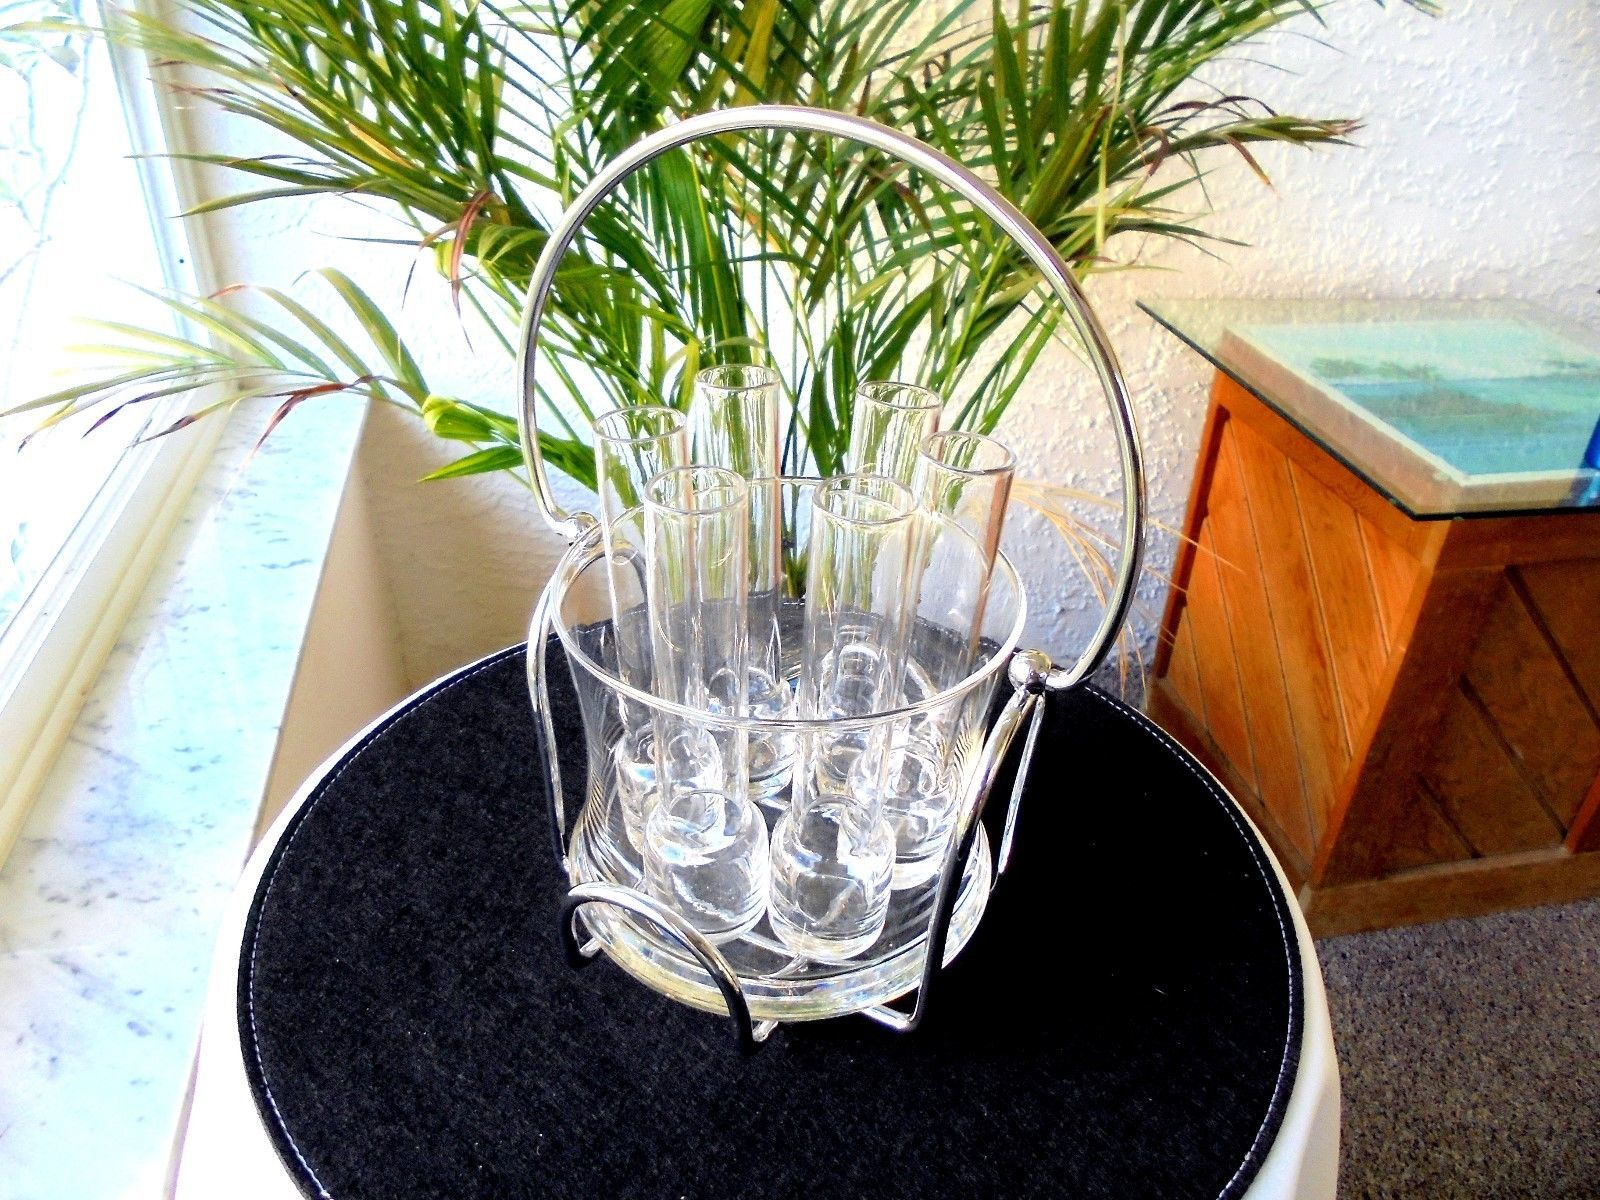 Complete Vodka Set 6 Glasses With Ice Bucket in Stainless Steel Cradle - $23.76